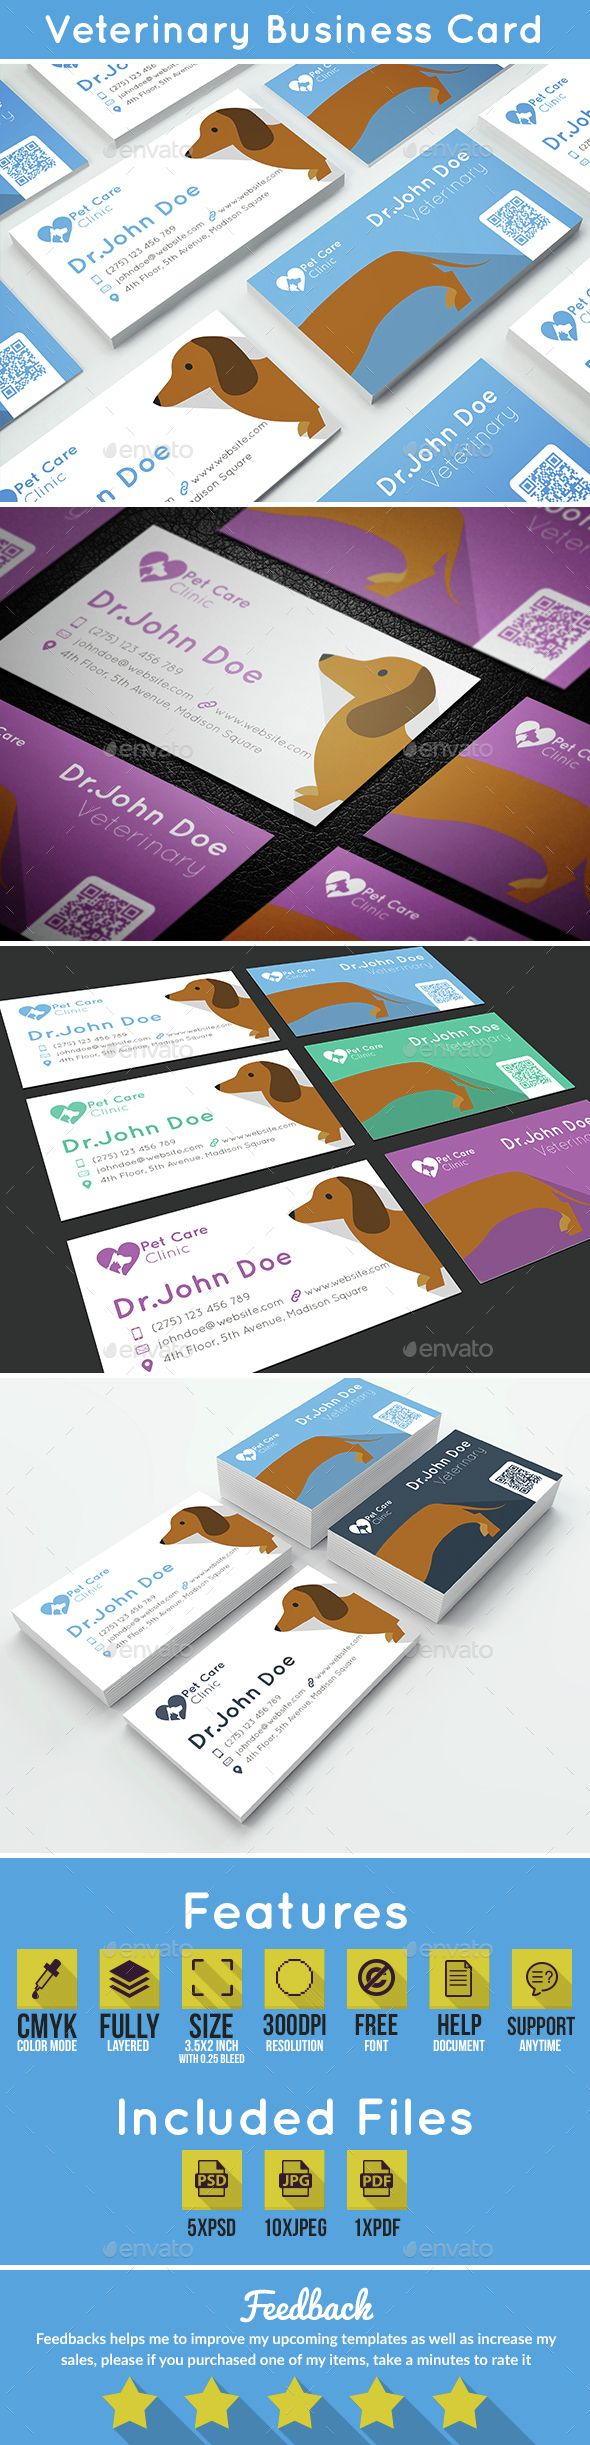 9311 best unique business card design images on pinterest business veterinary business card photoshop psd care flat available here https reheart Image collections